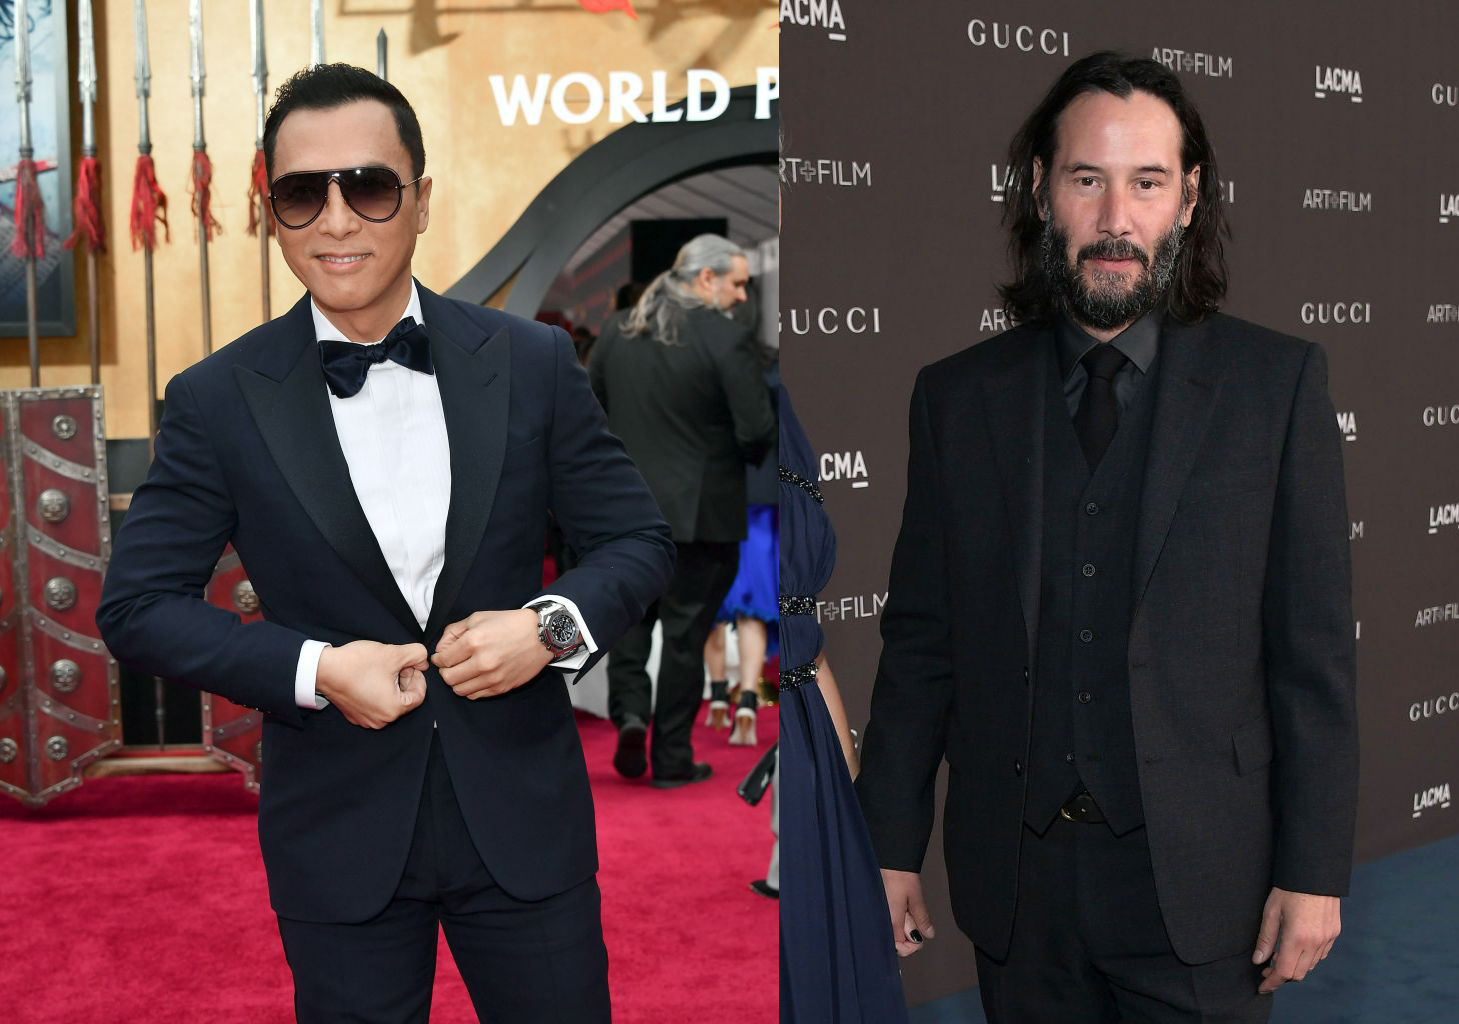 'John Wick 4' Casts Donnie Yen: Everything We Know So Far About The Film